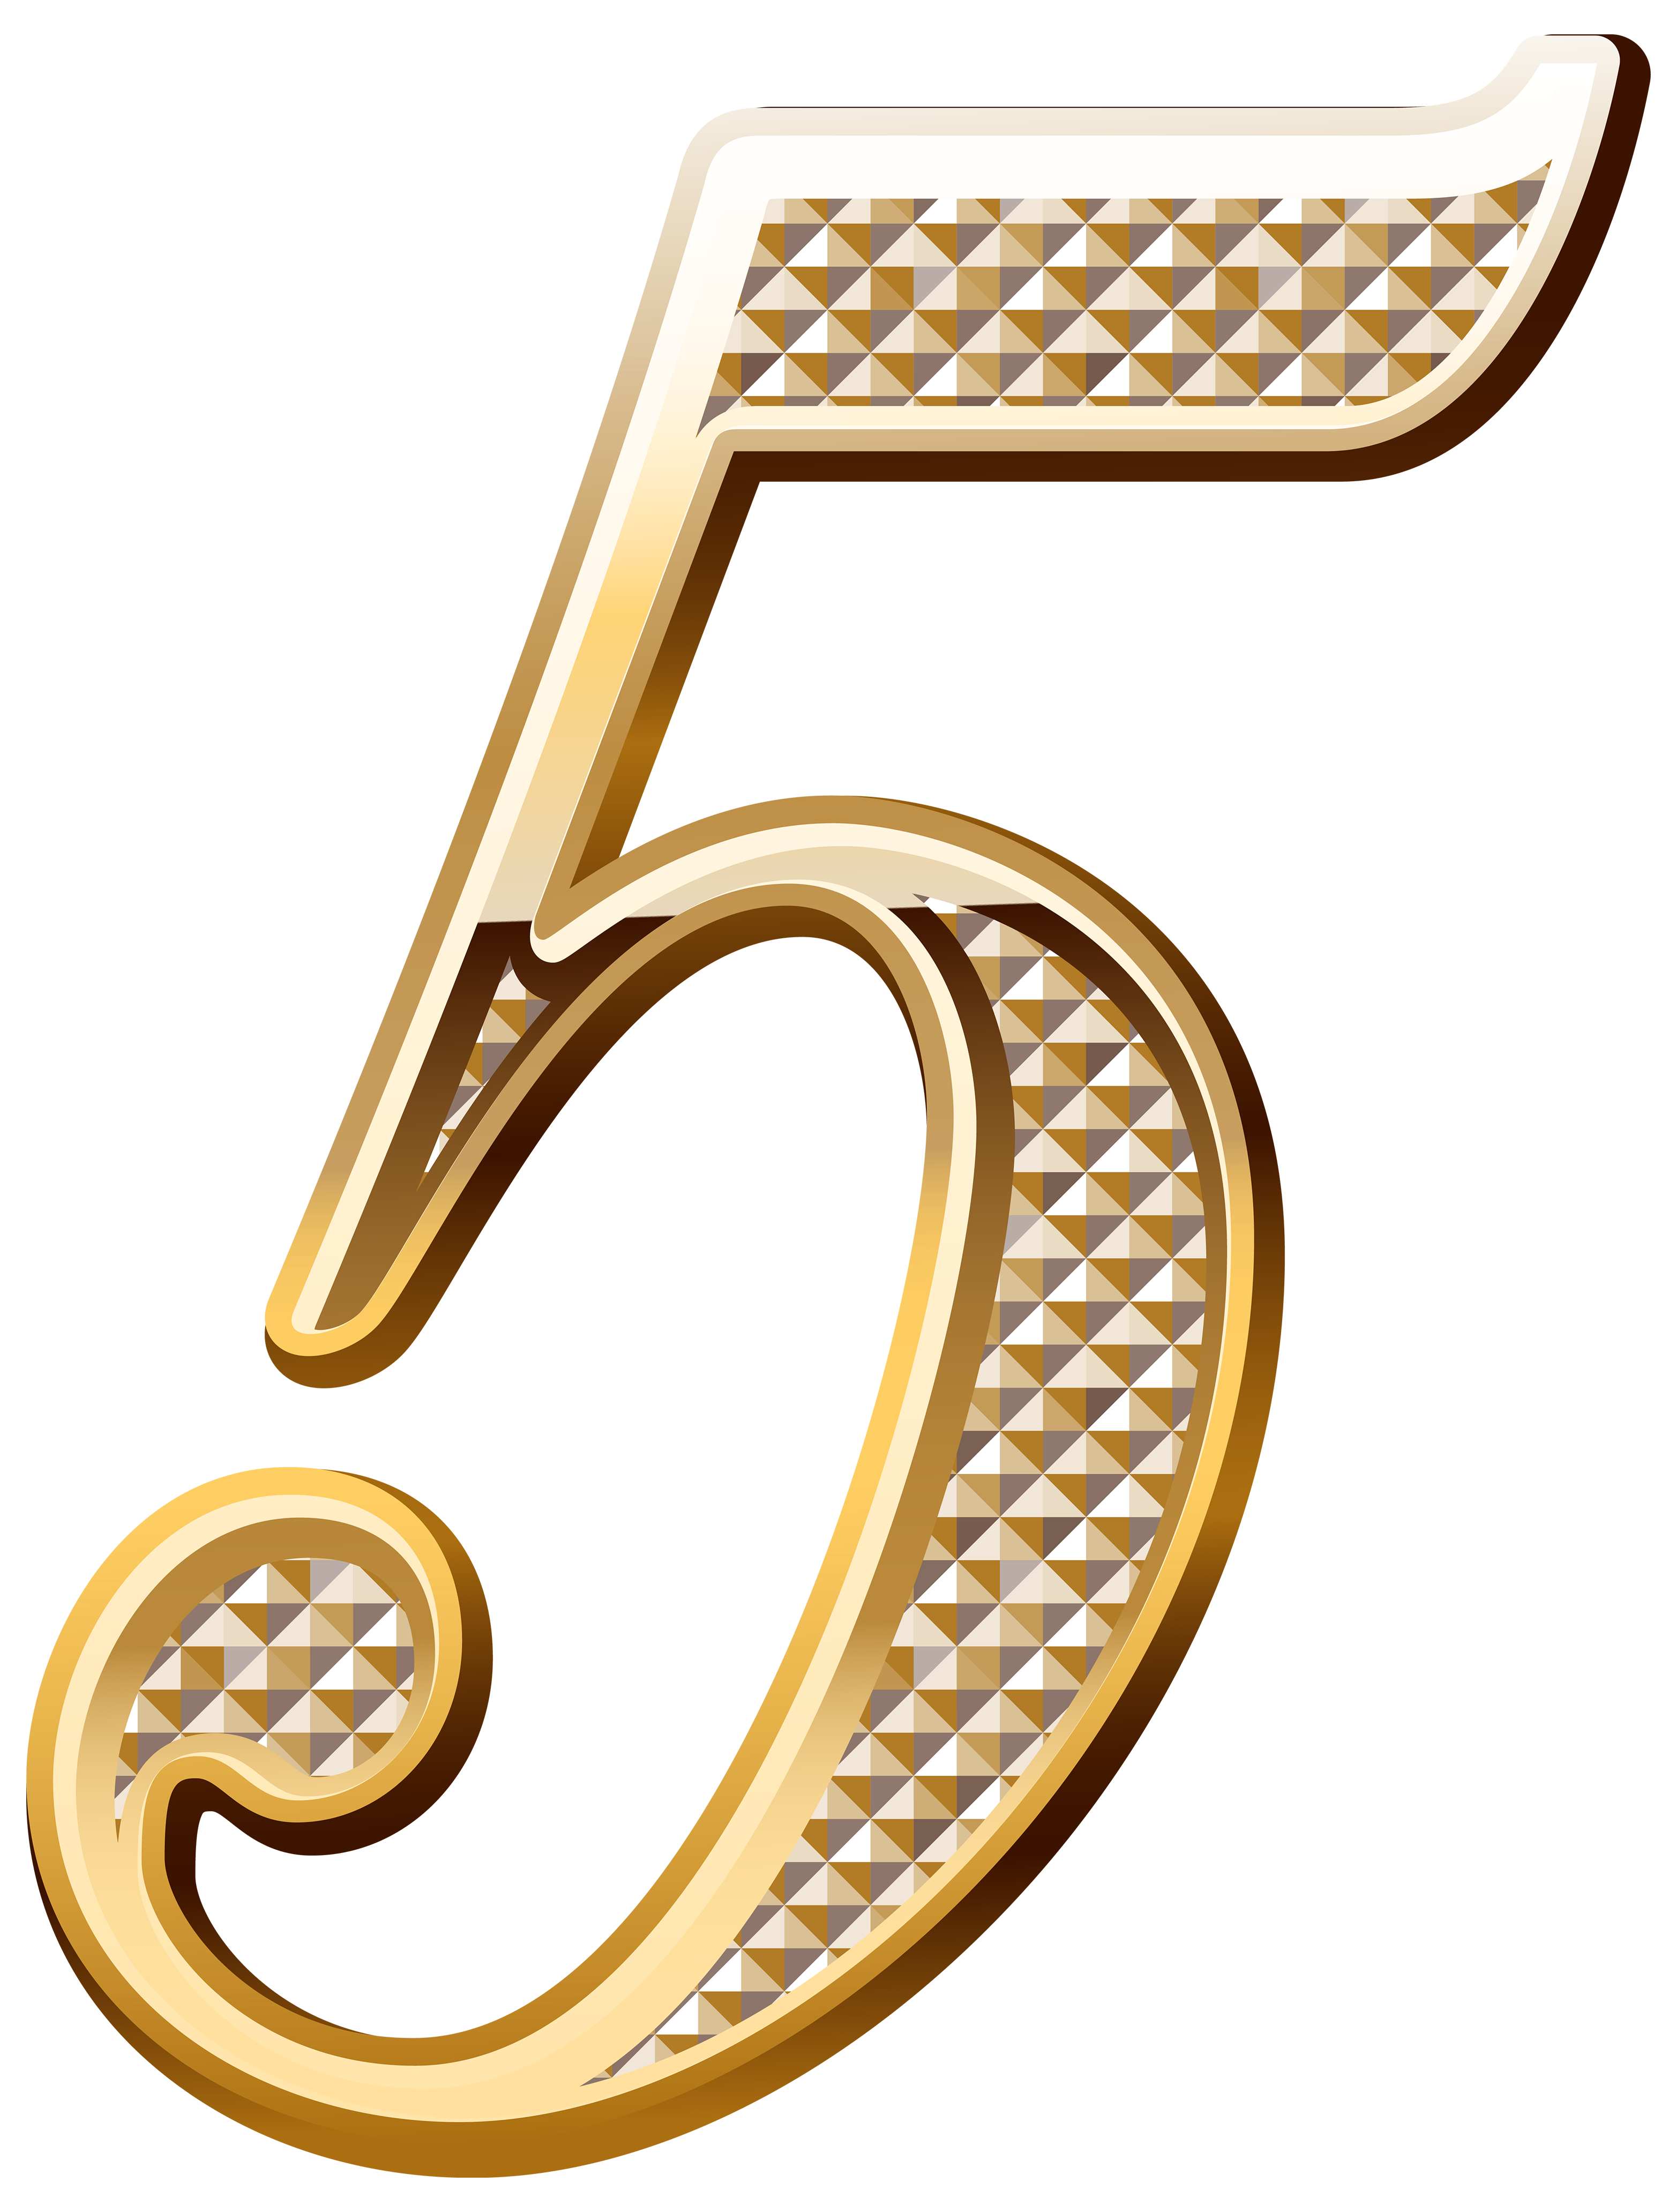 Numbers pinterest images. Clipart castle gold glitter